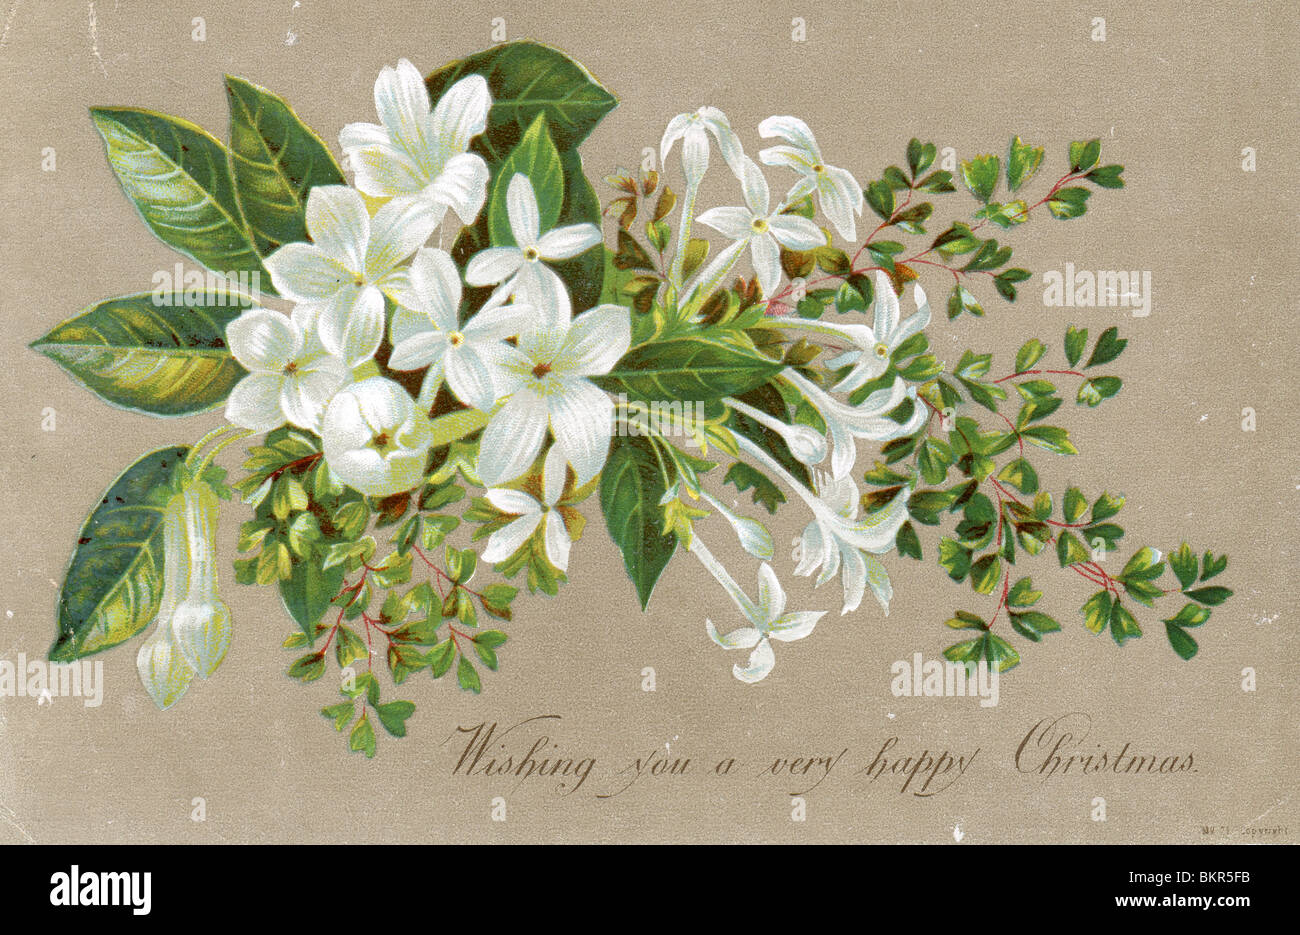 VICTORIAN CHRISTMAS CARD Stock Photo: 29398079 - Alamy